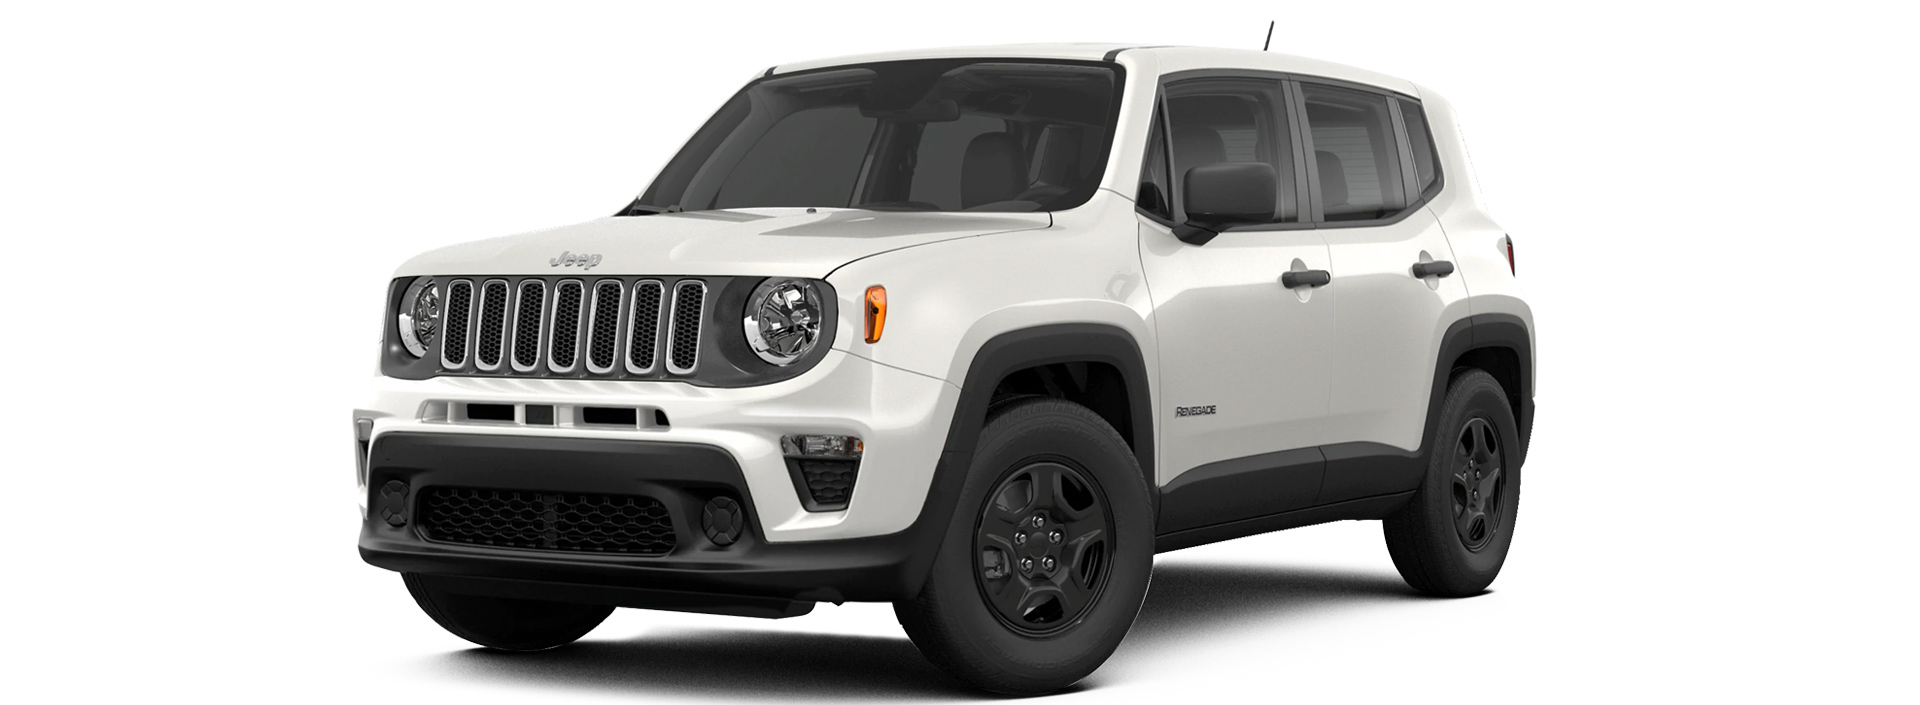 Jeep Renegade Special Offers in Winchester VA